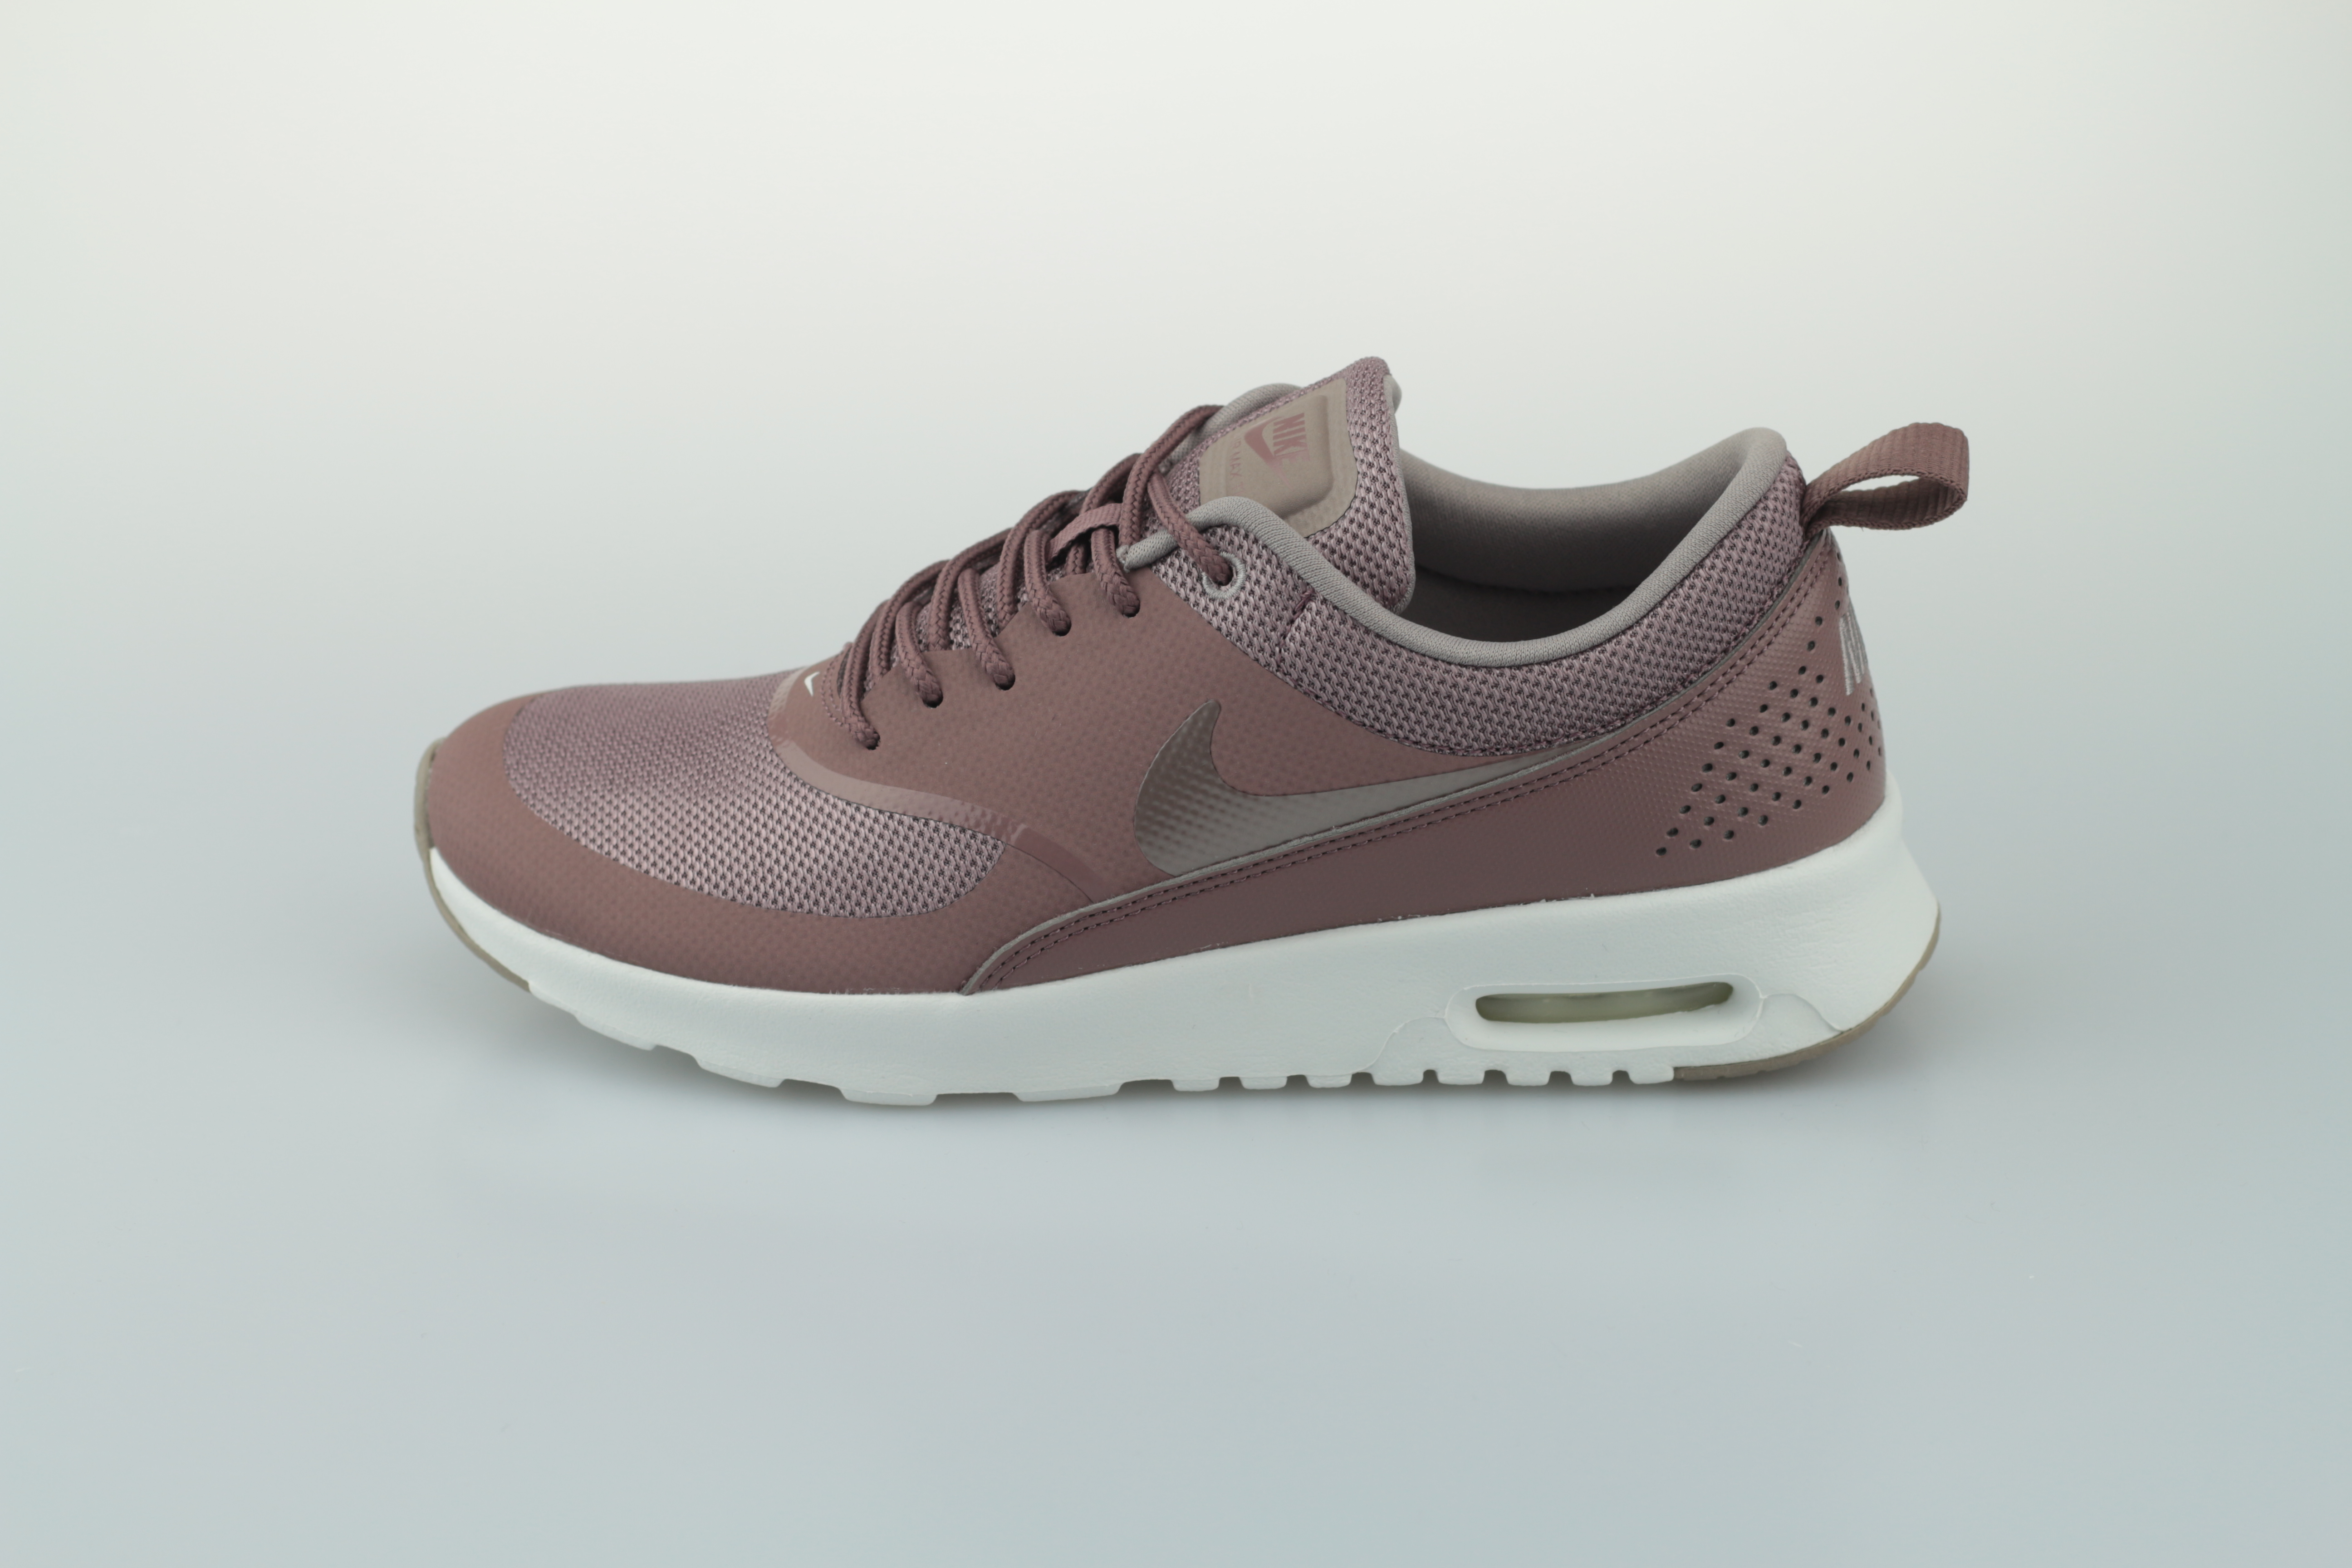 quality design 96f65 41afa Vorschau  Wmns Air Max Thea (Smokey Mauve   Punice - Summit White) ...